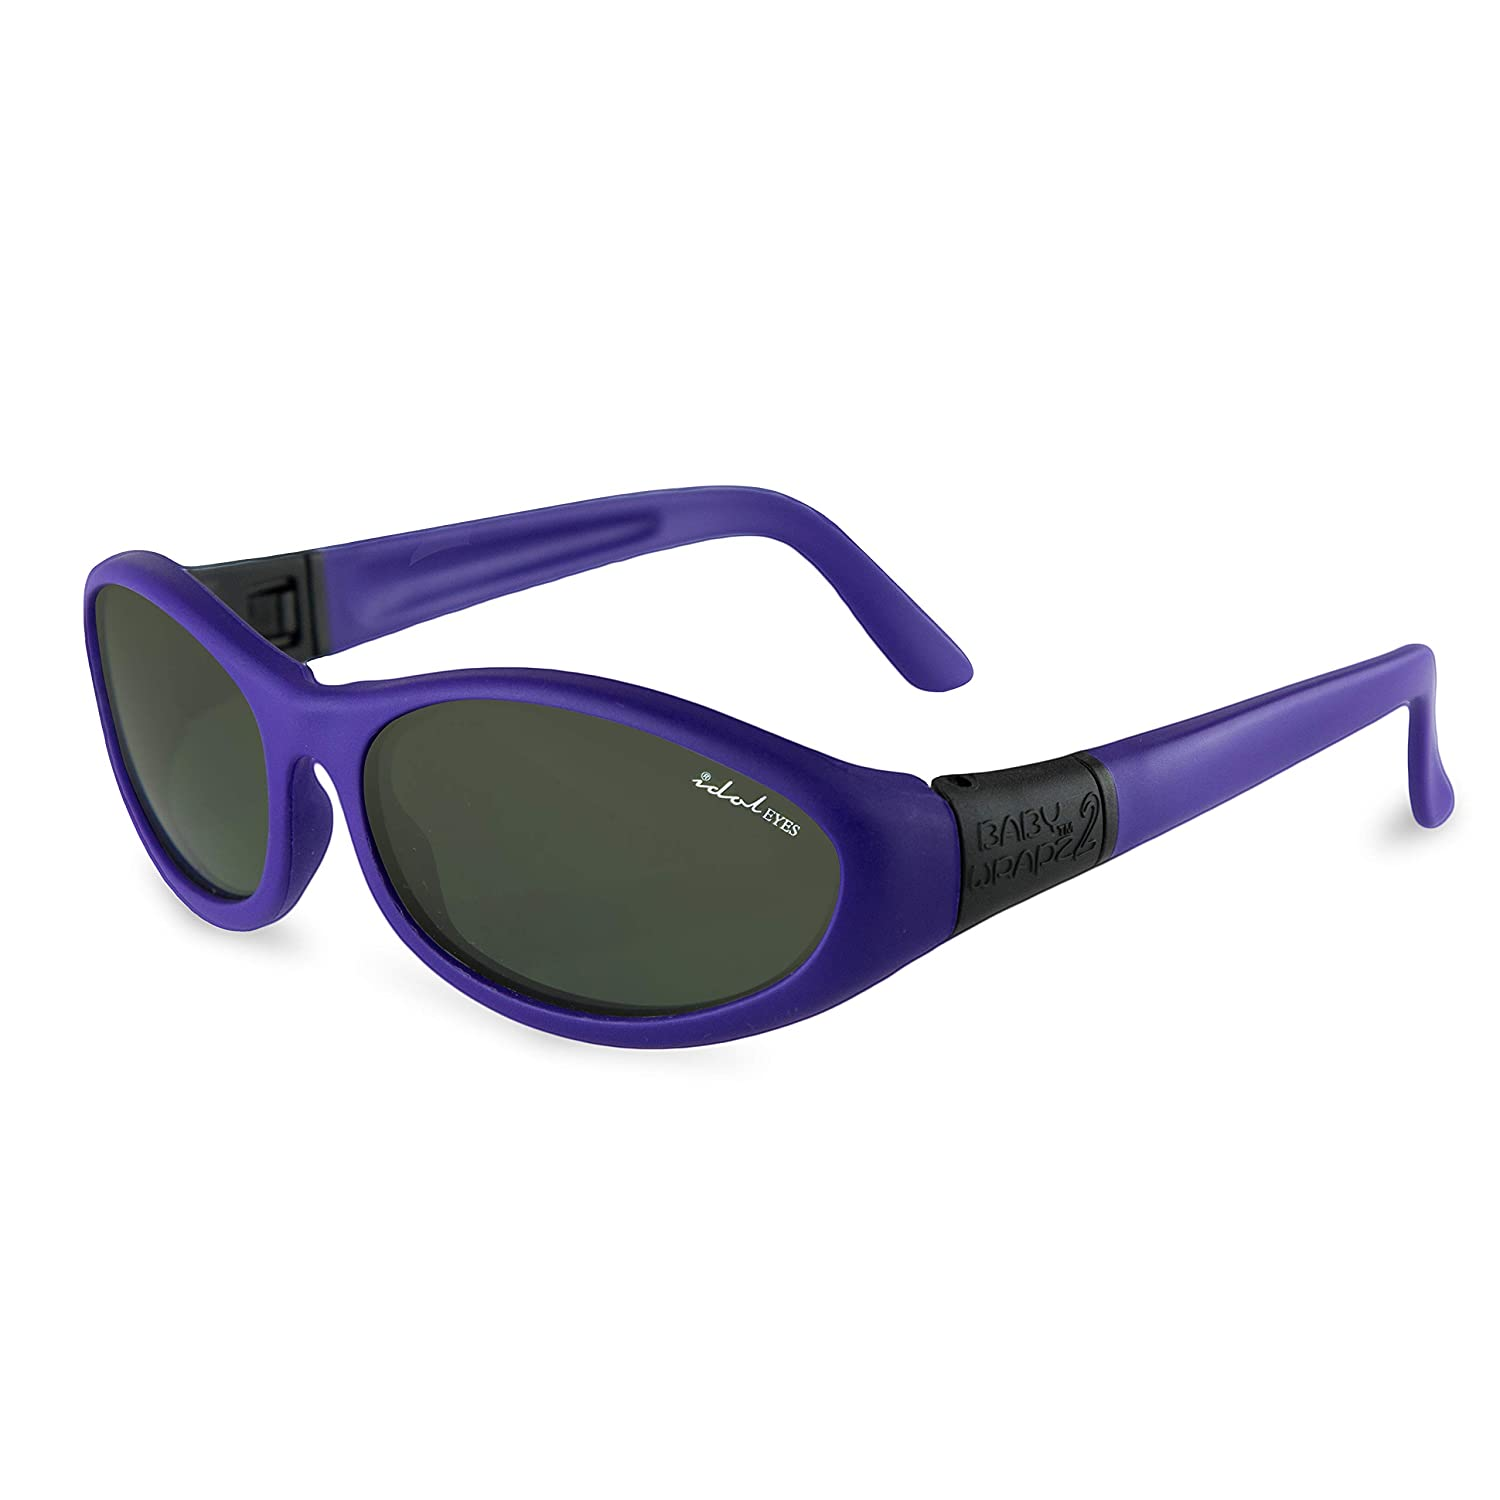 Strap and Temples Baby Wrapz 2 Baby Sunglasses w// 100/% UV Protection Sunglasses for Kids Ages 0-5 Toddler and Kids Sunglasses with Strap Purple